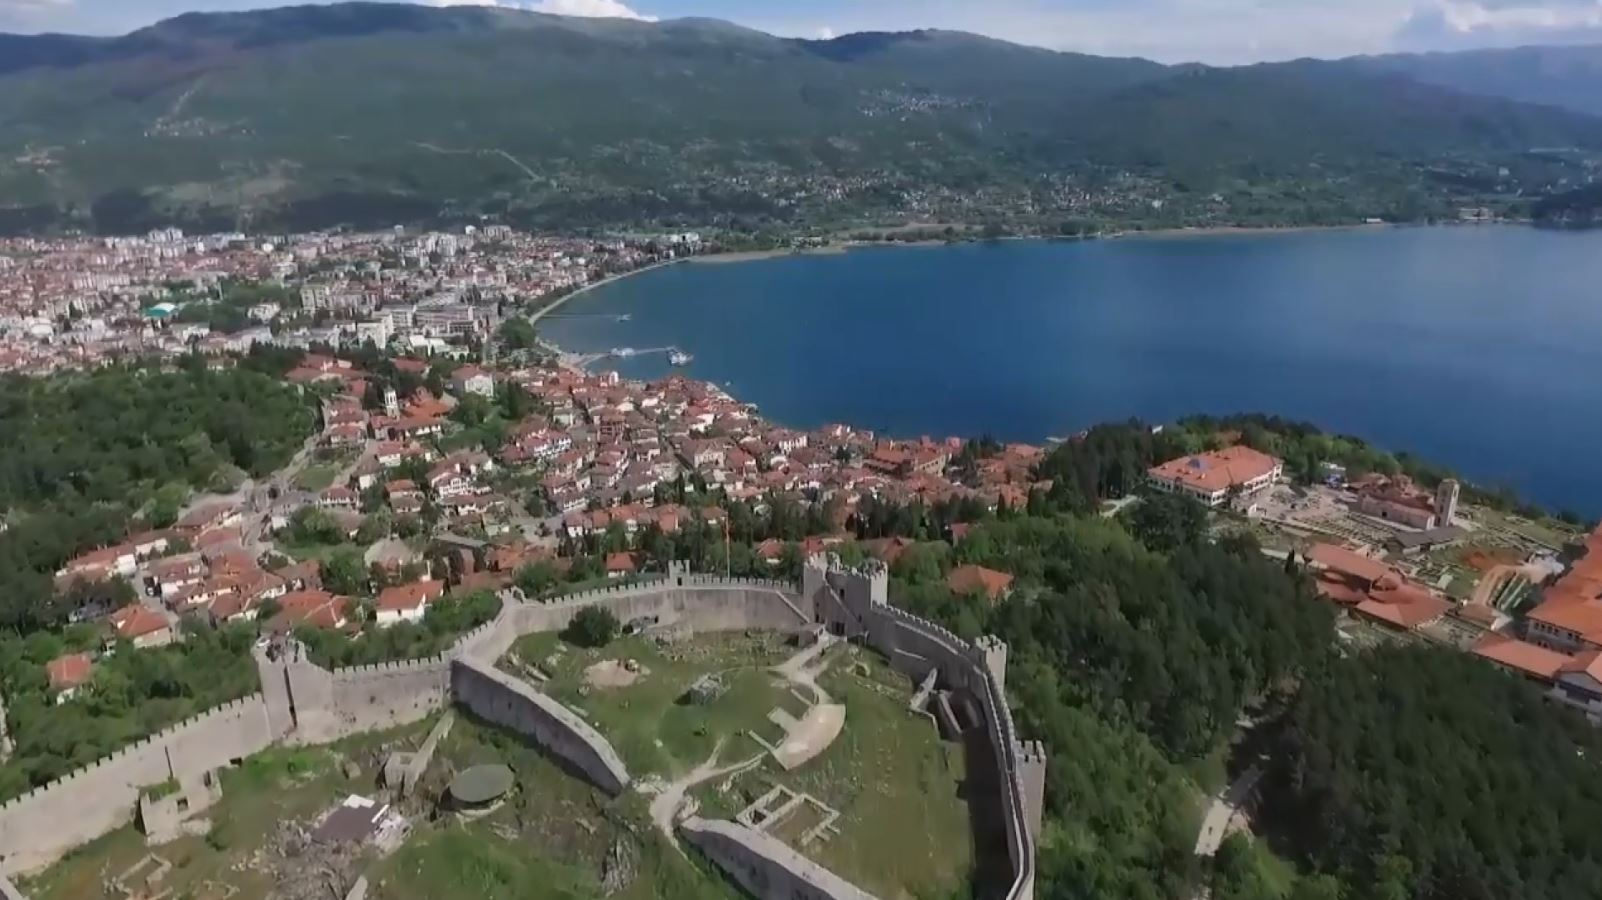 UNESCO warns authorities in Ohrid about illegal constructions